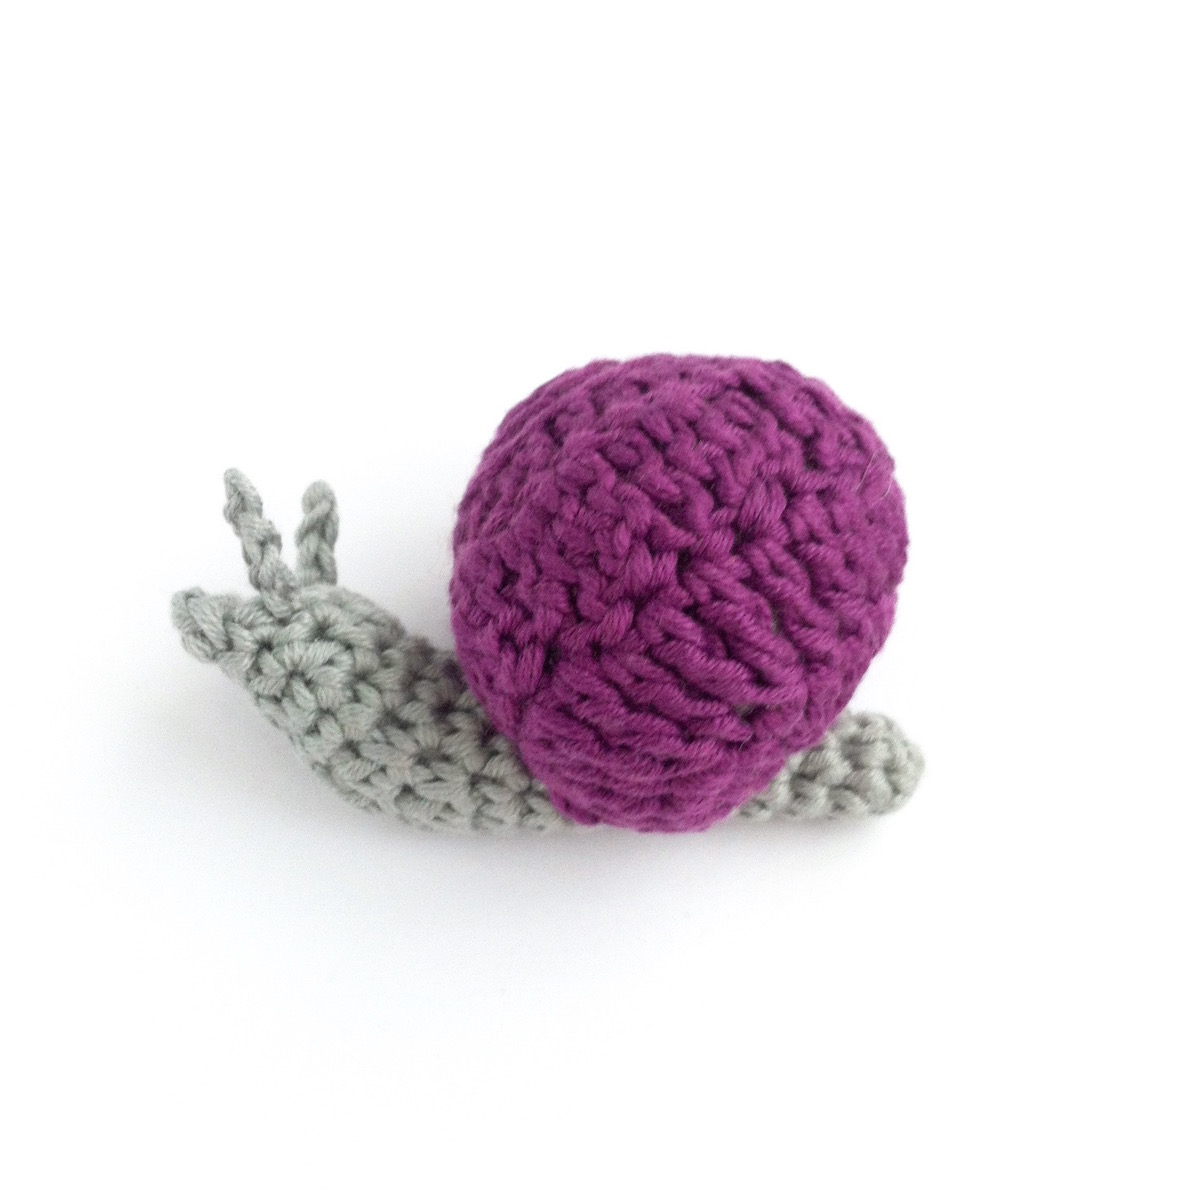 Picture of a brightly-coloured hand-crocheted snail by Little Conkers